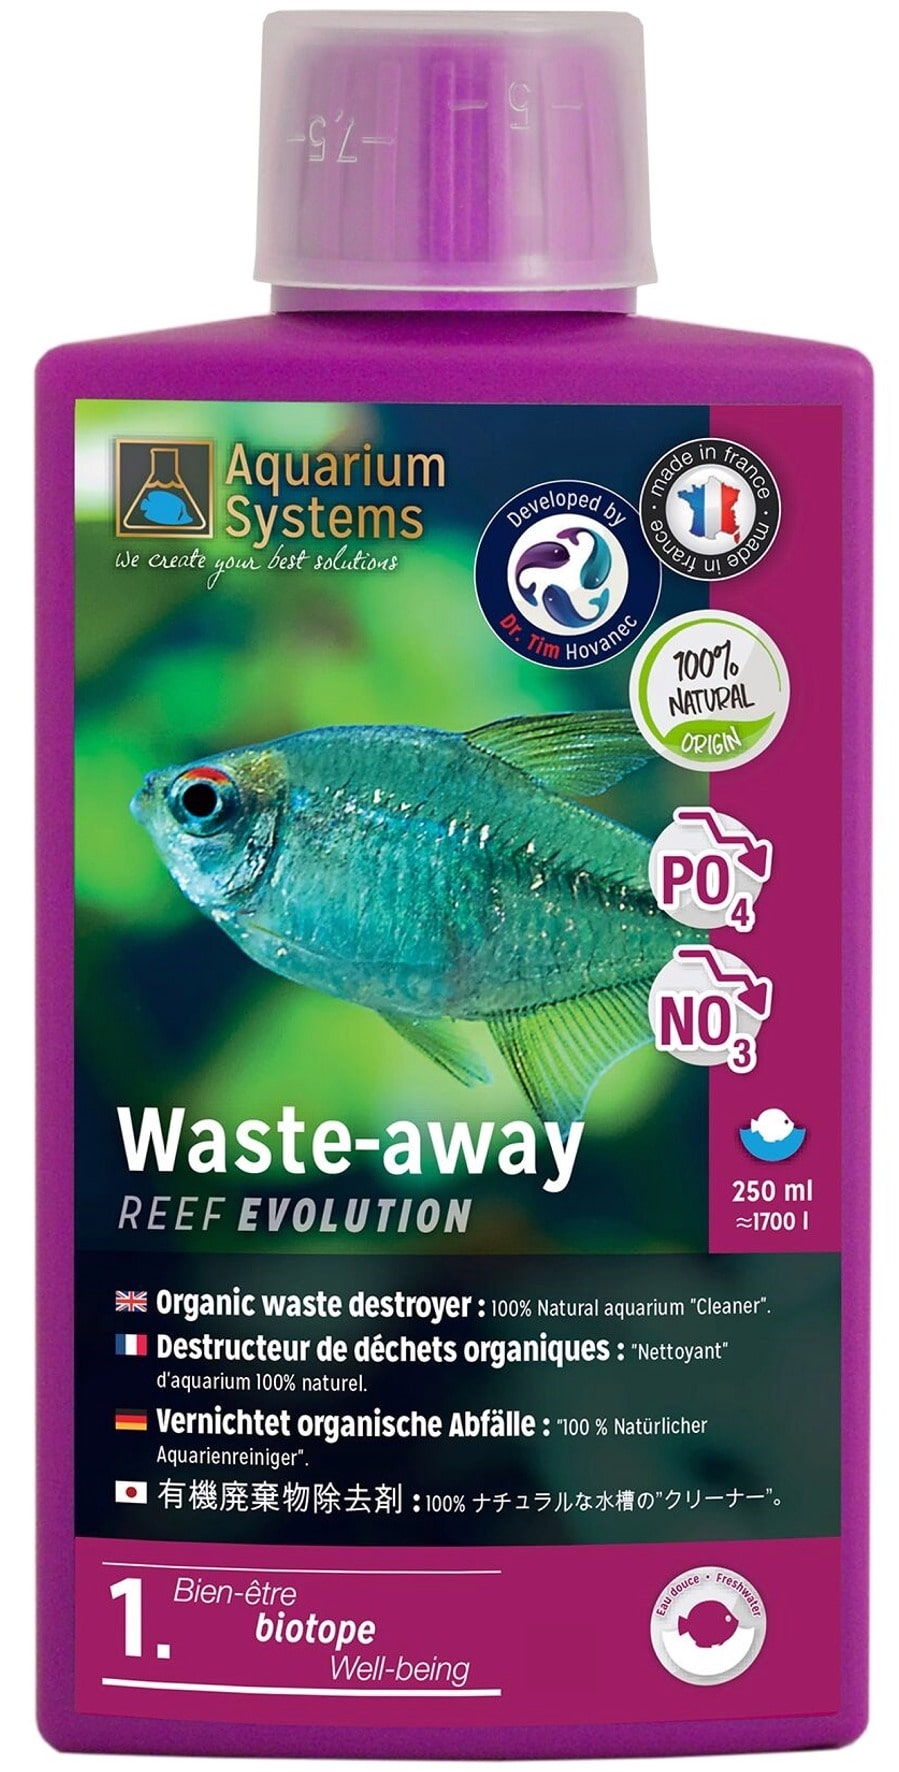 AQUARIUM SYSTEMS Waste-Away Eau Douce 250 ml nettoyant 100% naturel à base de bactéries pour aquarium